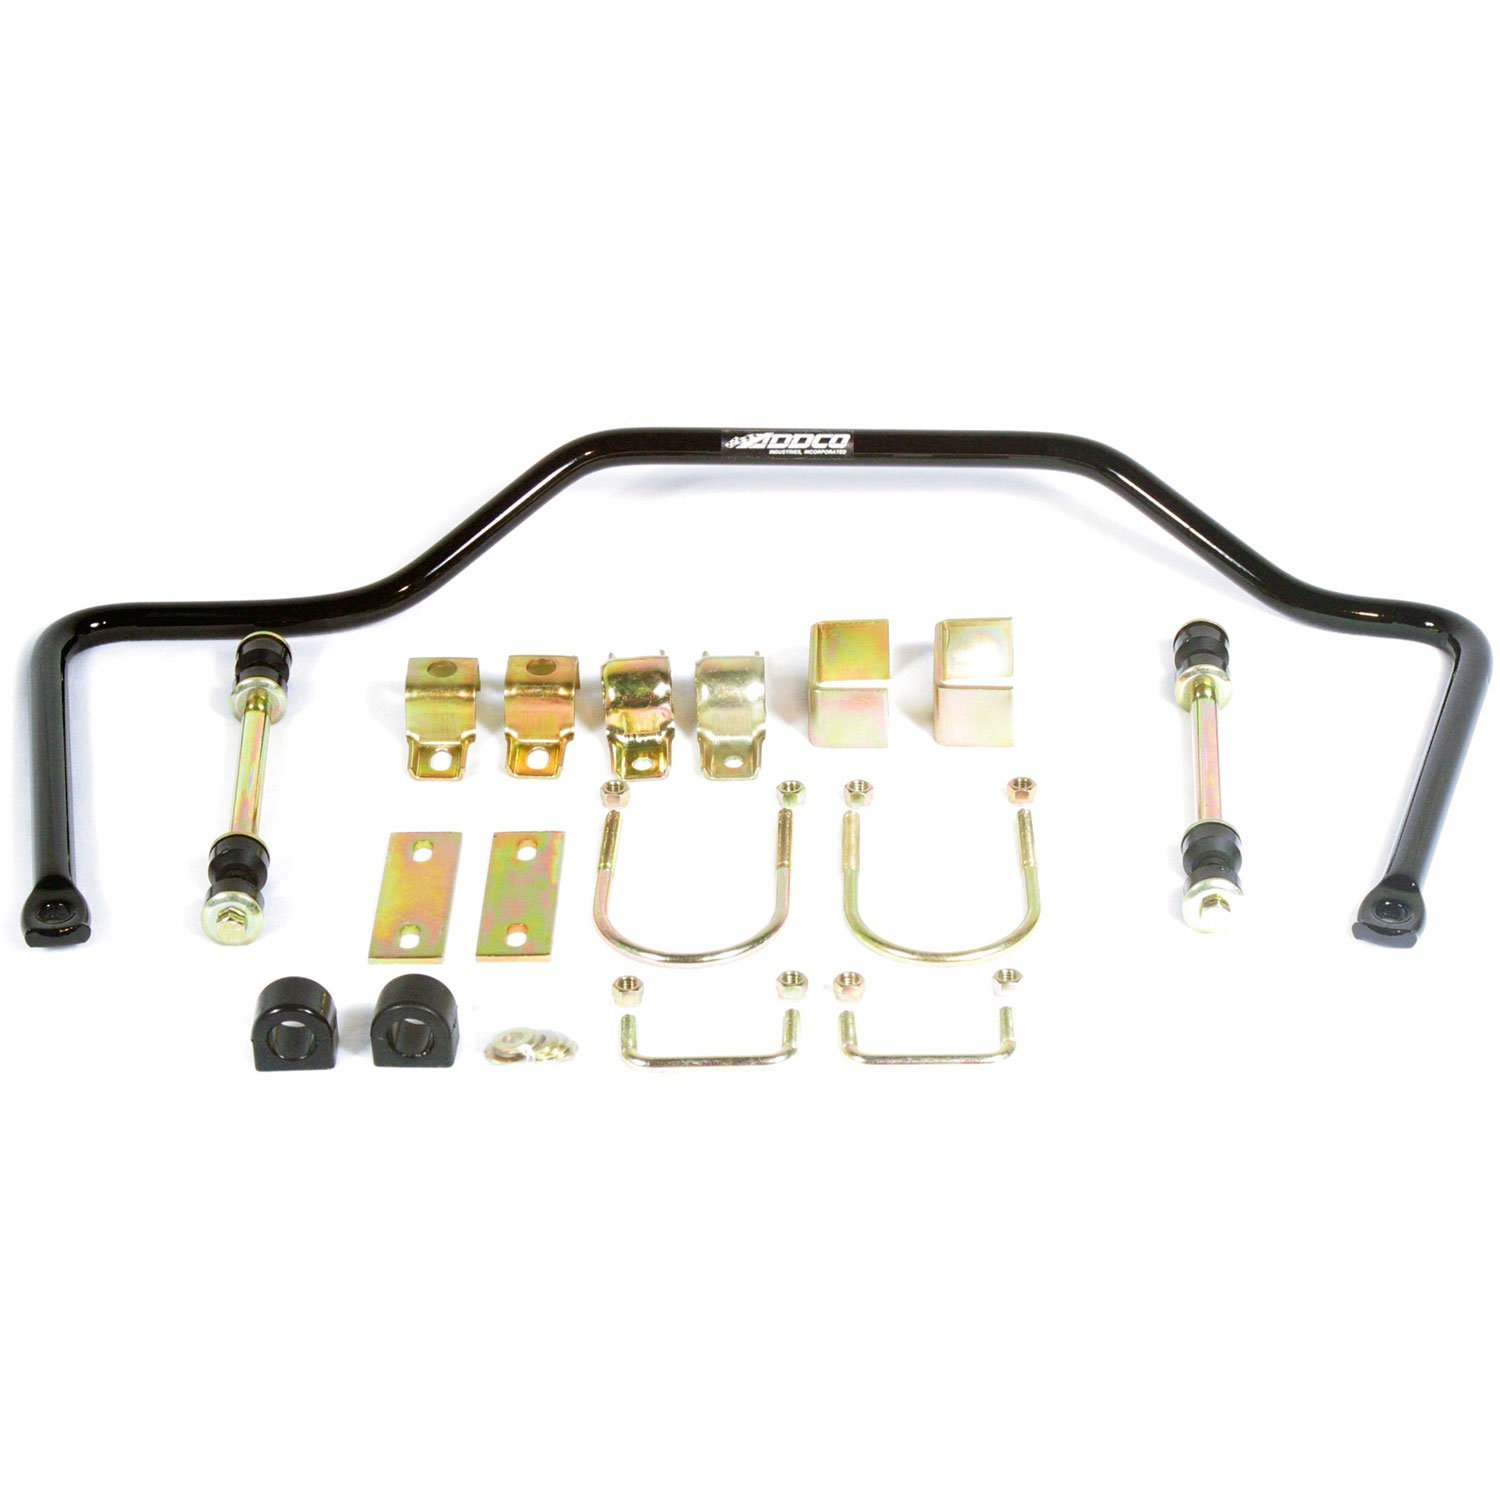 Addco 147 Sway Bar Kit